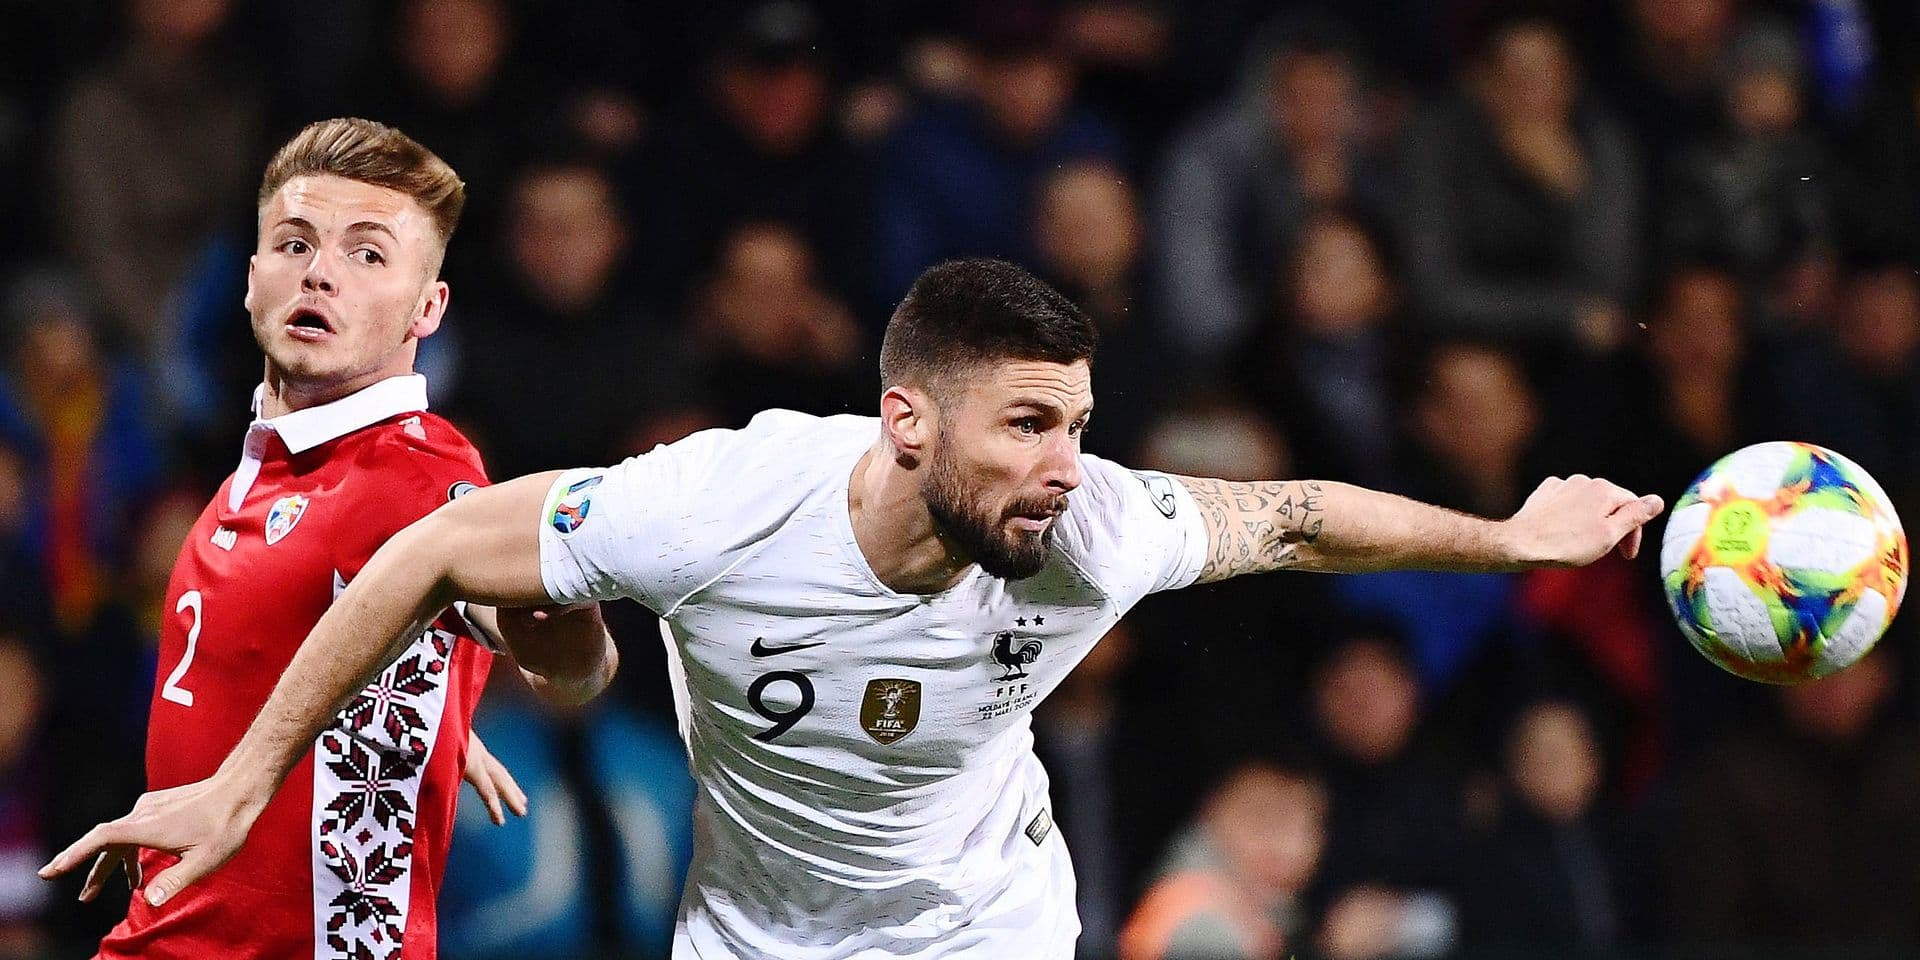 Moldova's defender Oleg Reabciuk (L) vies with France's forward Olivier Giroud (R) during the Euro 2020 qualifying football match between Moldova and France, on March 22, 2019 at Zimbru stadium in Chisinau. (Photo by FRANCK FIFE / AFP)